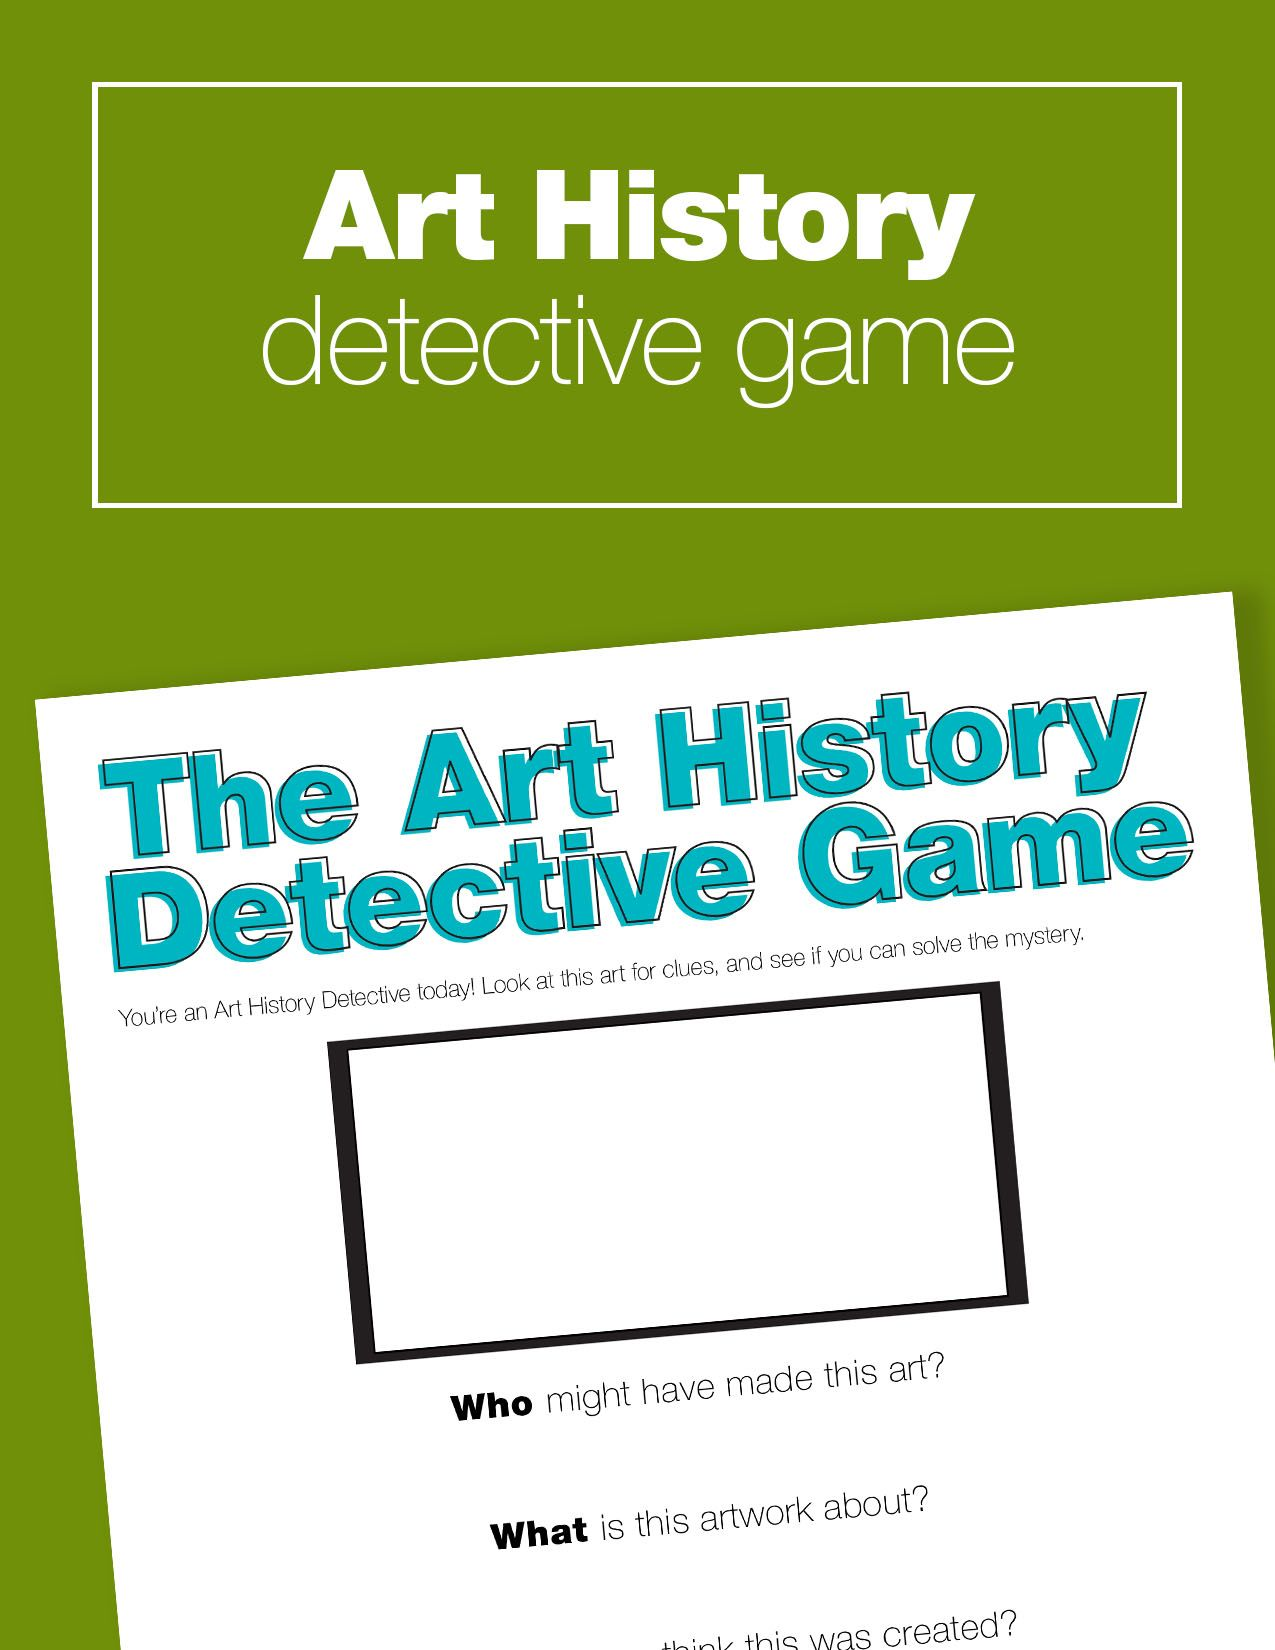 How To Play The Art History Detective Game